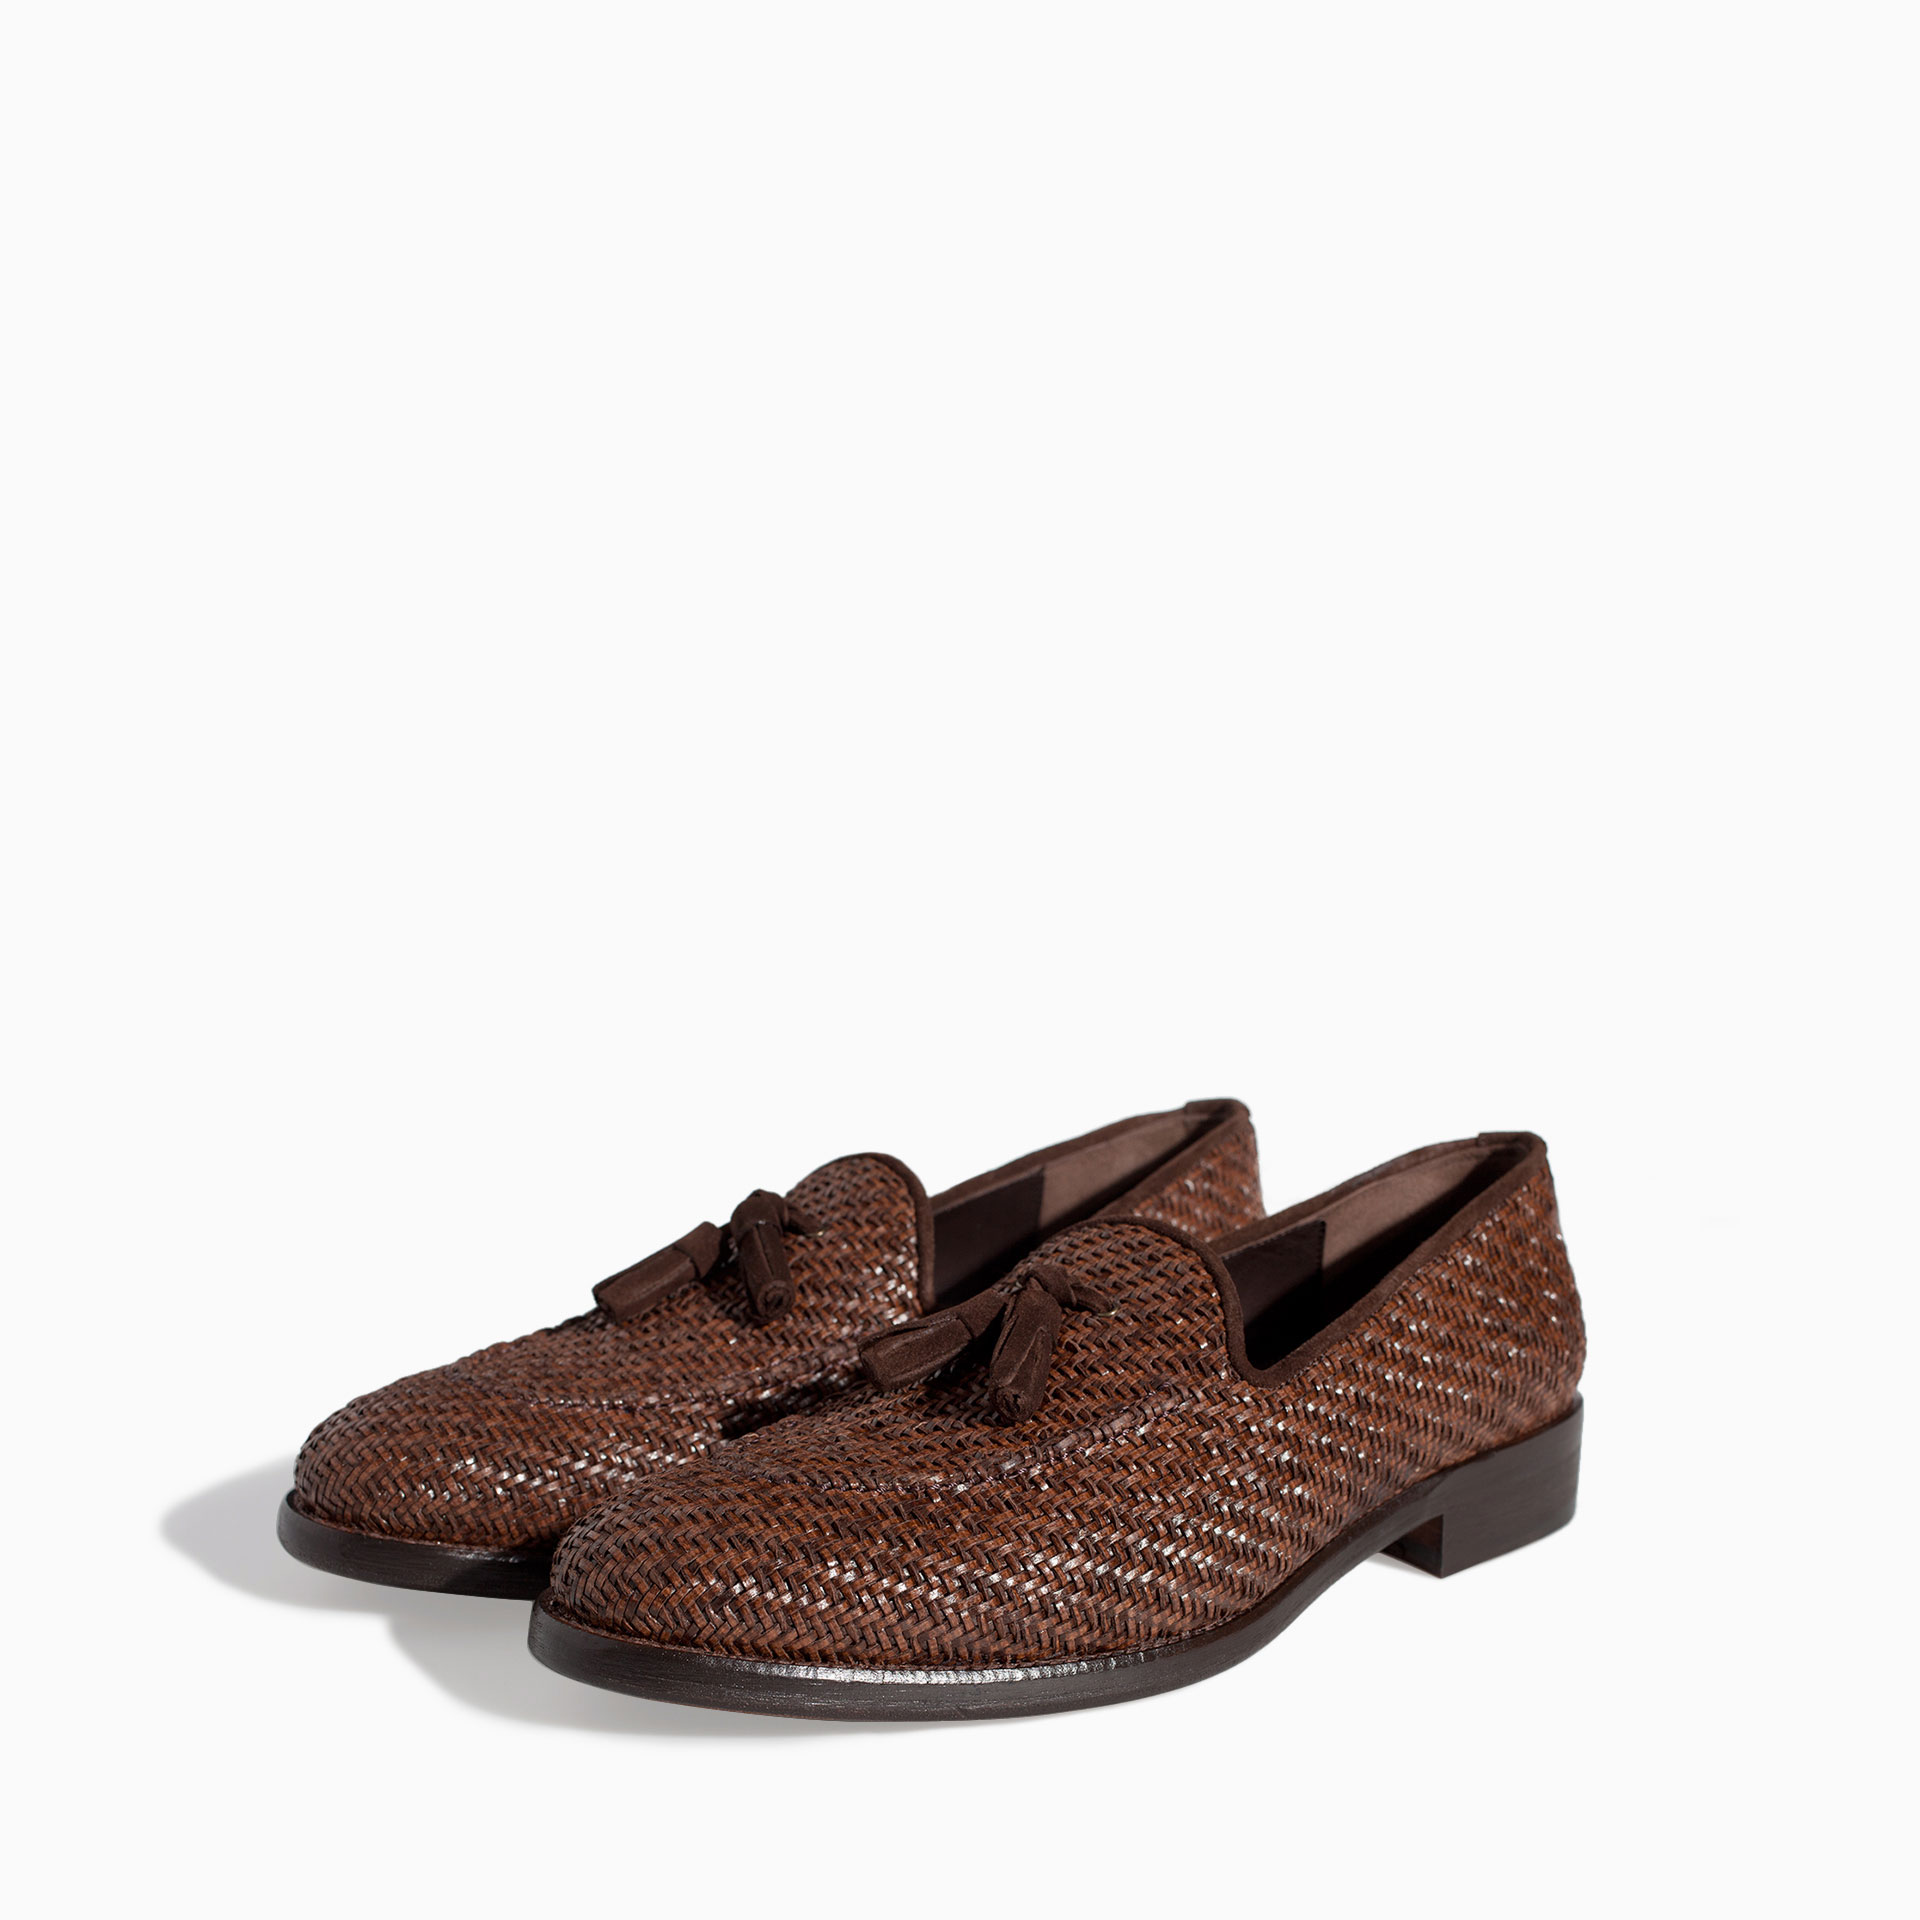 Formal Moccasin Shoes Women